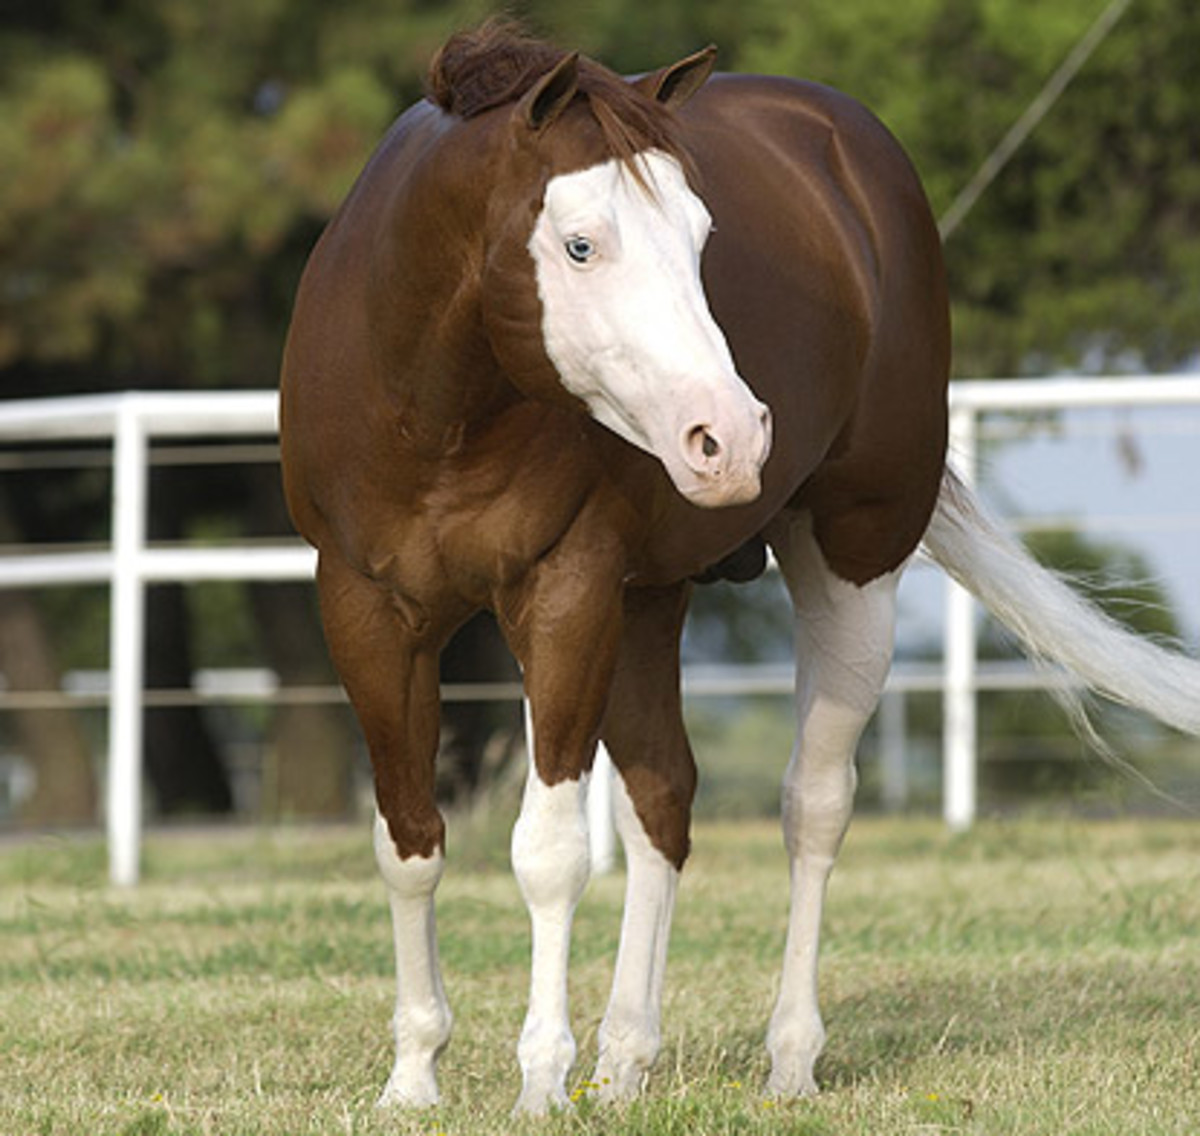 Colonels Smoking Gun is a splash overo who is actually a purebred American Quarter Horse.  He is a classic example of the splash gene with a bald face, blue eyes, high white stockings and a large belly spot.